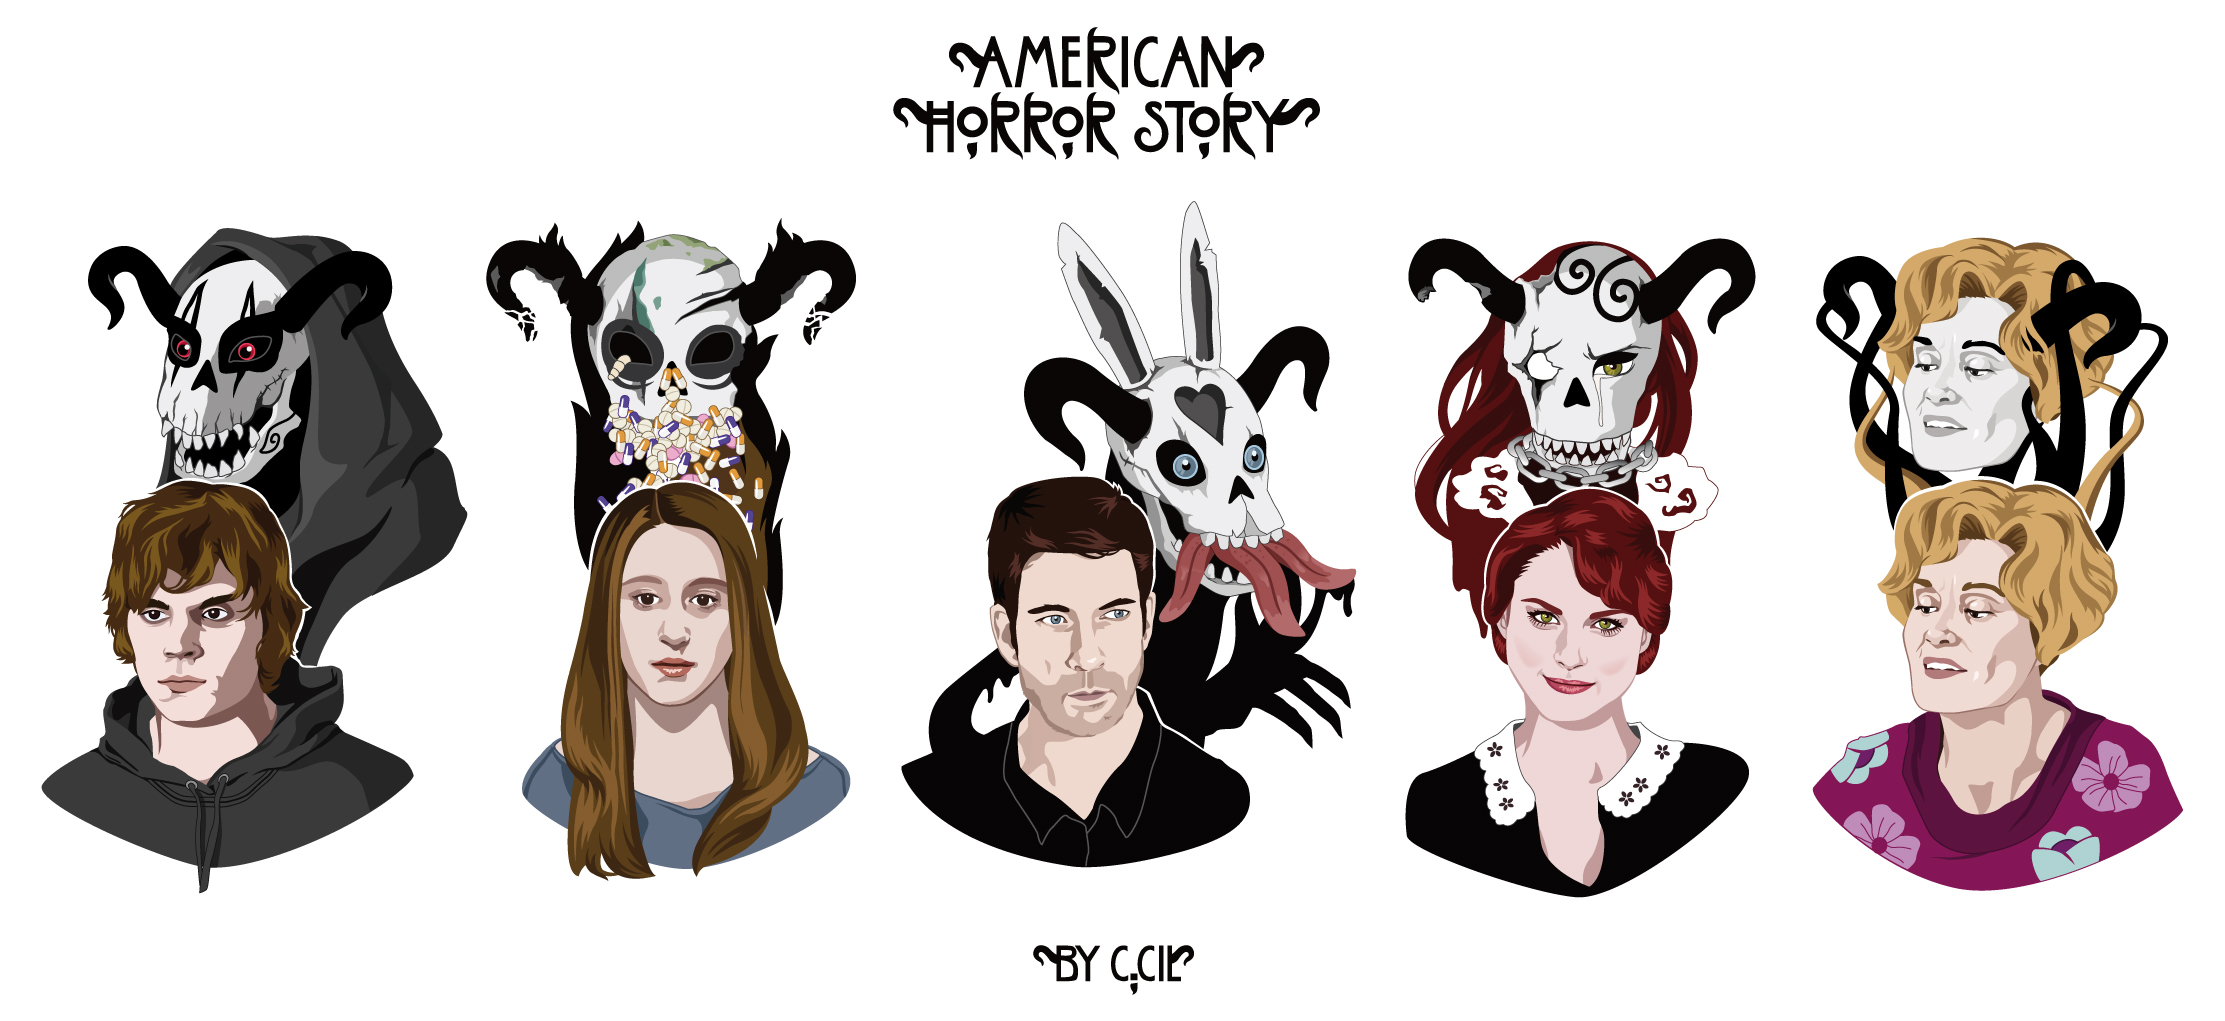 watch american horror story season 3 coven episodes online